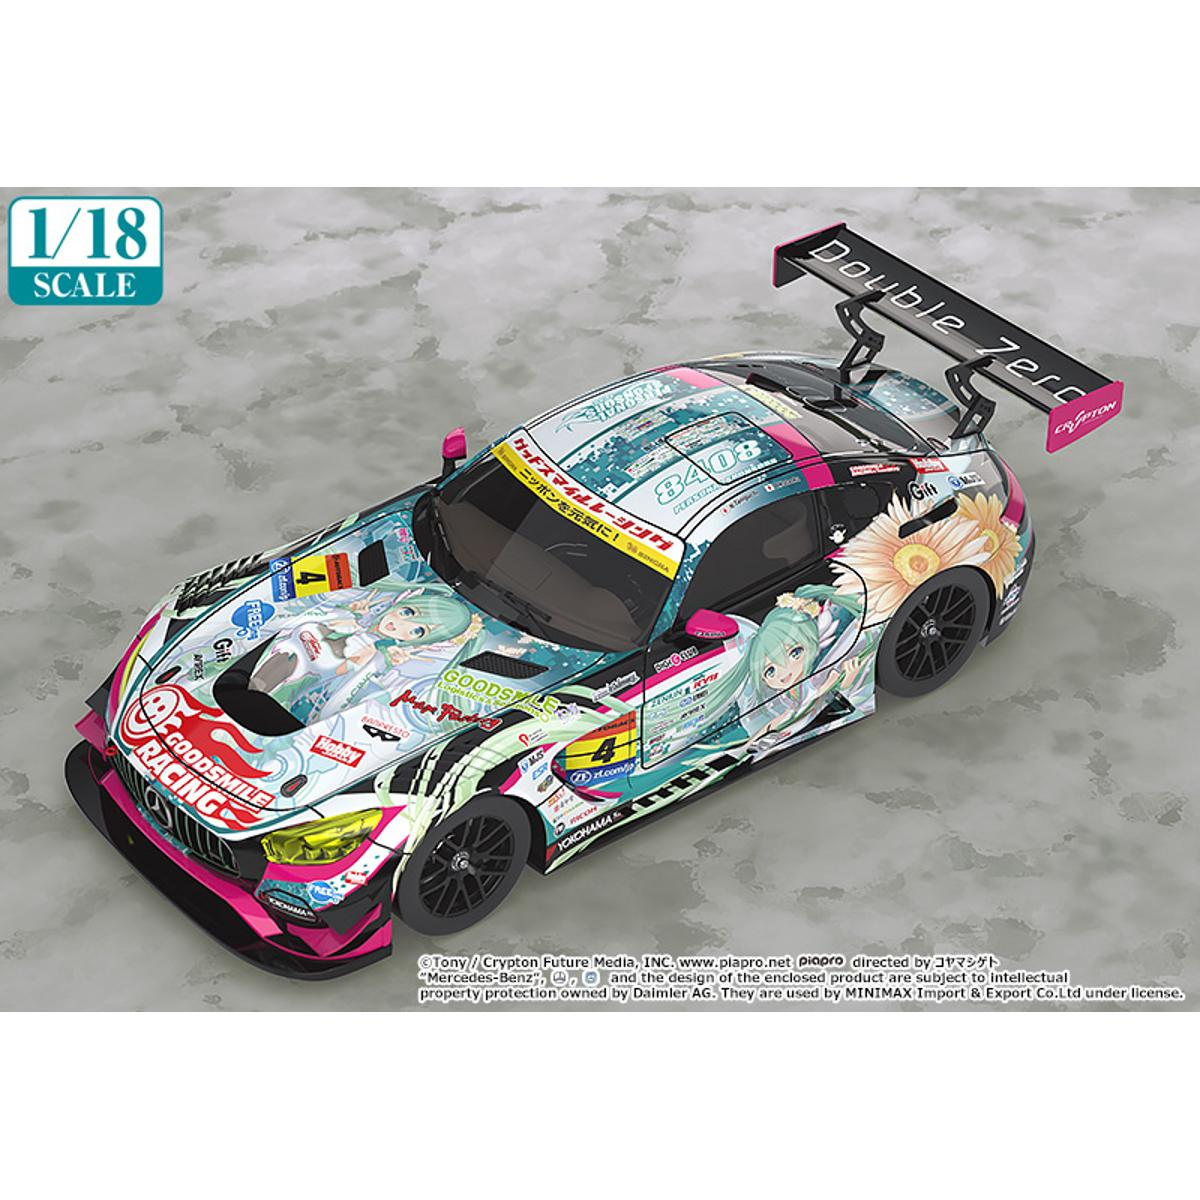 1/18th Scale Good Smile Hatsune Miku AMG 2017 SUPER GT Ver. - GSC Online Exclusive Edition